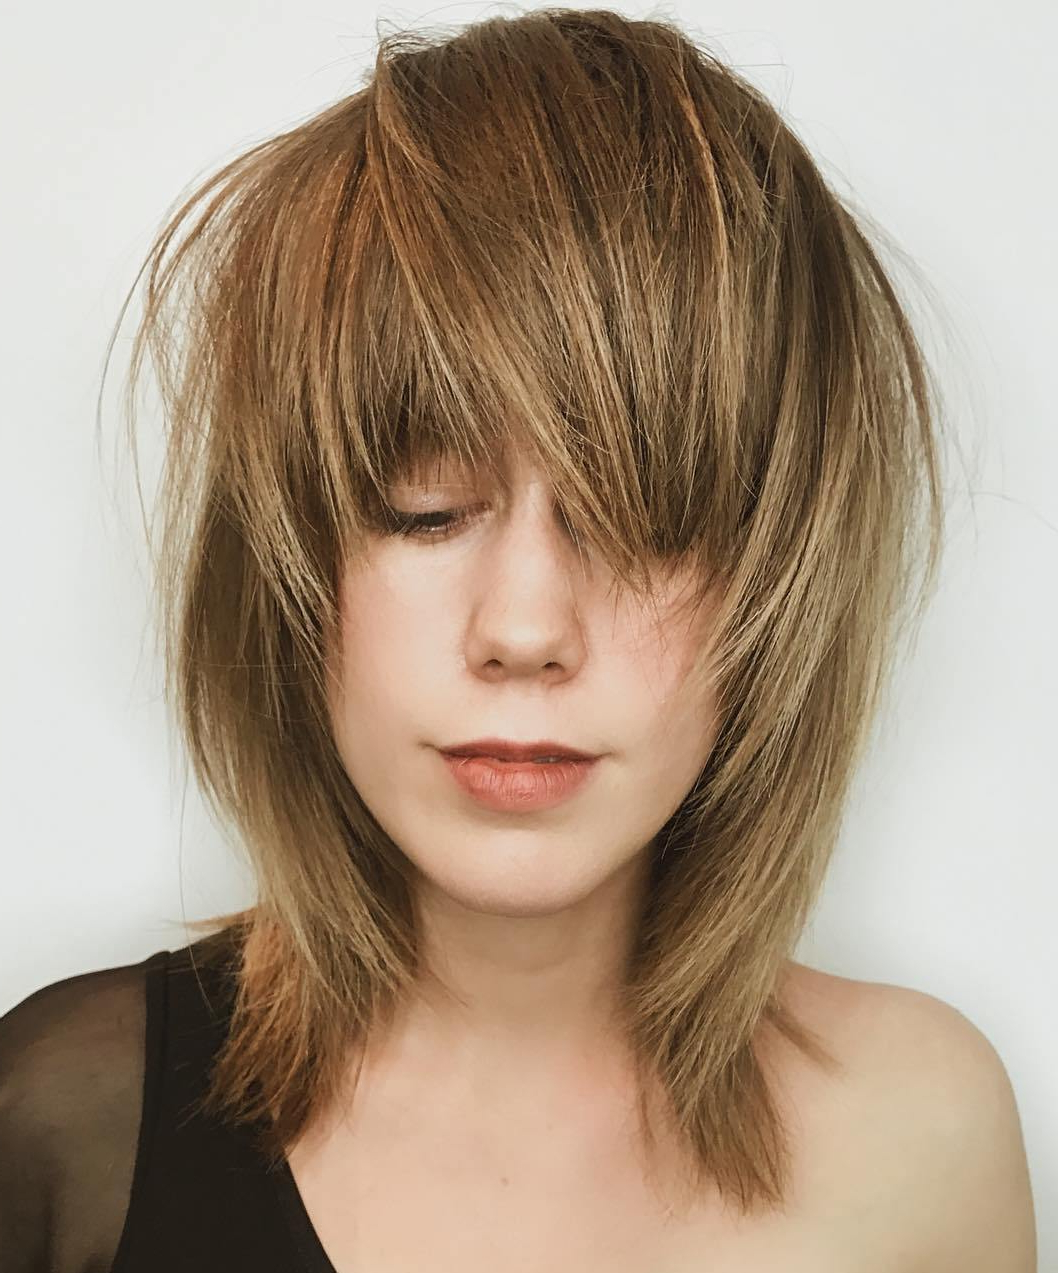 Trendy Strawberry Blonde Bob Hairstyles With Flipped Ends Regarding The Most Instagrammable Hairstyles With Bangs In (View 18 of 20)